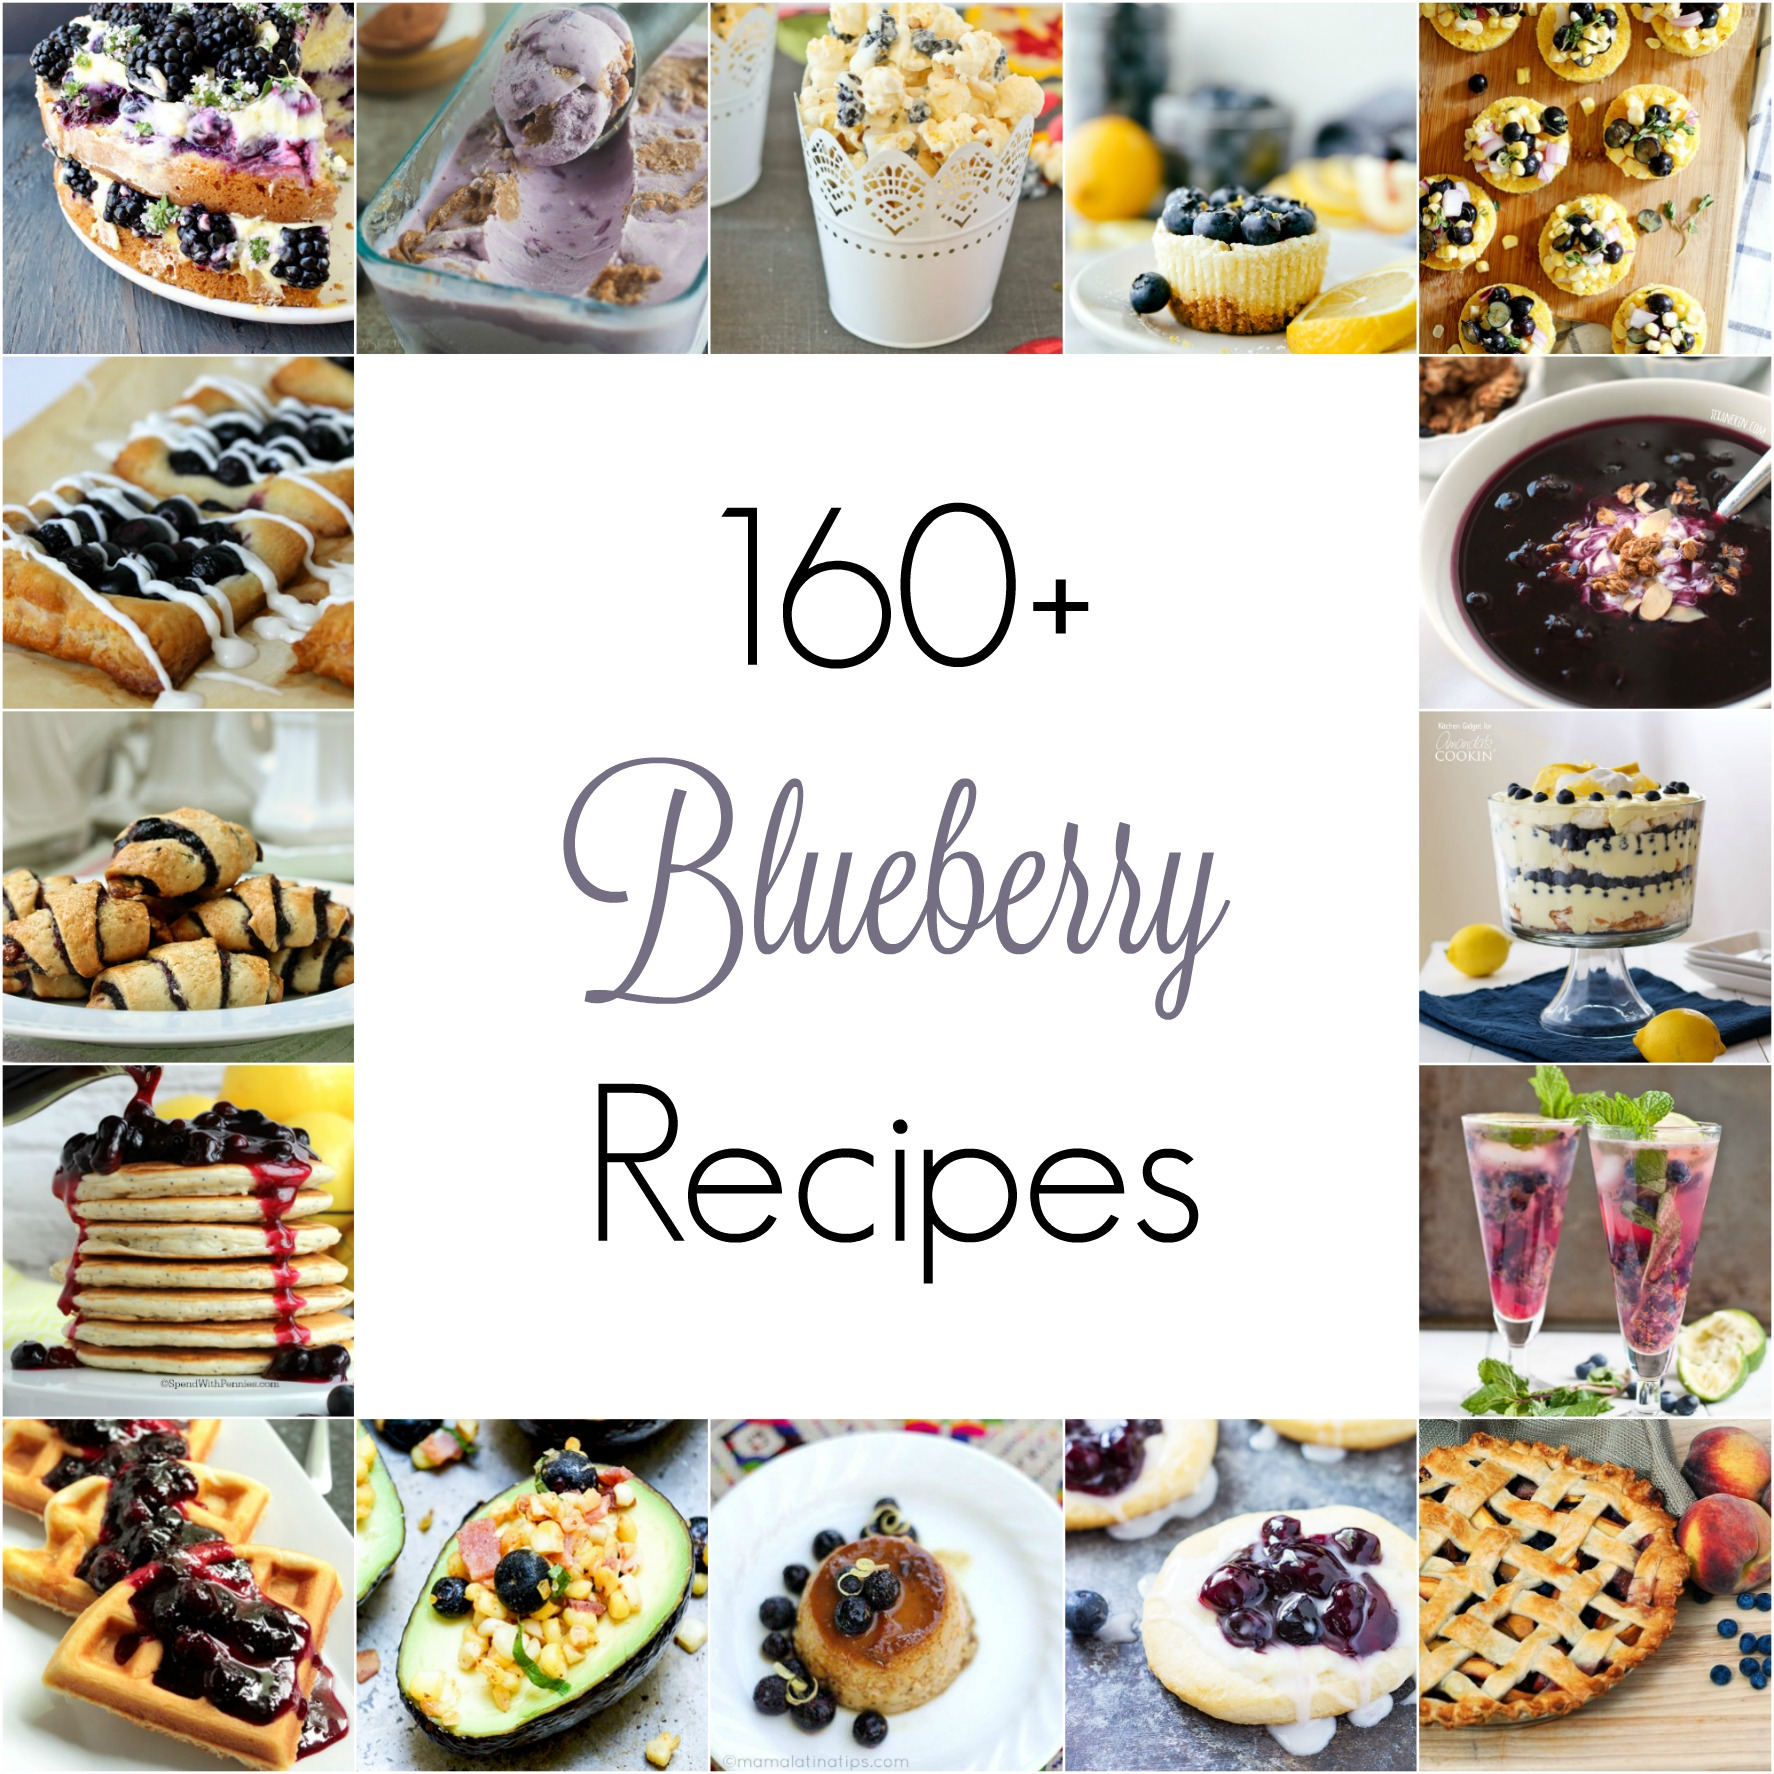 July 10th is National Blueberry Picking Day, so I've compiled over 160 recipes, sweet and savory, to help you use those blueberries.